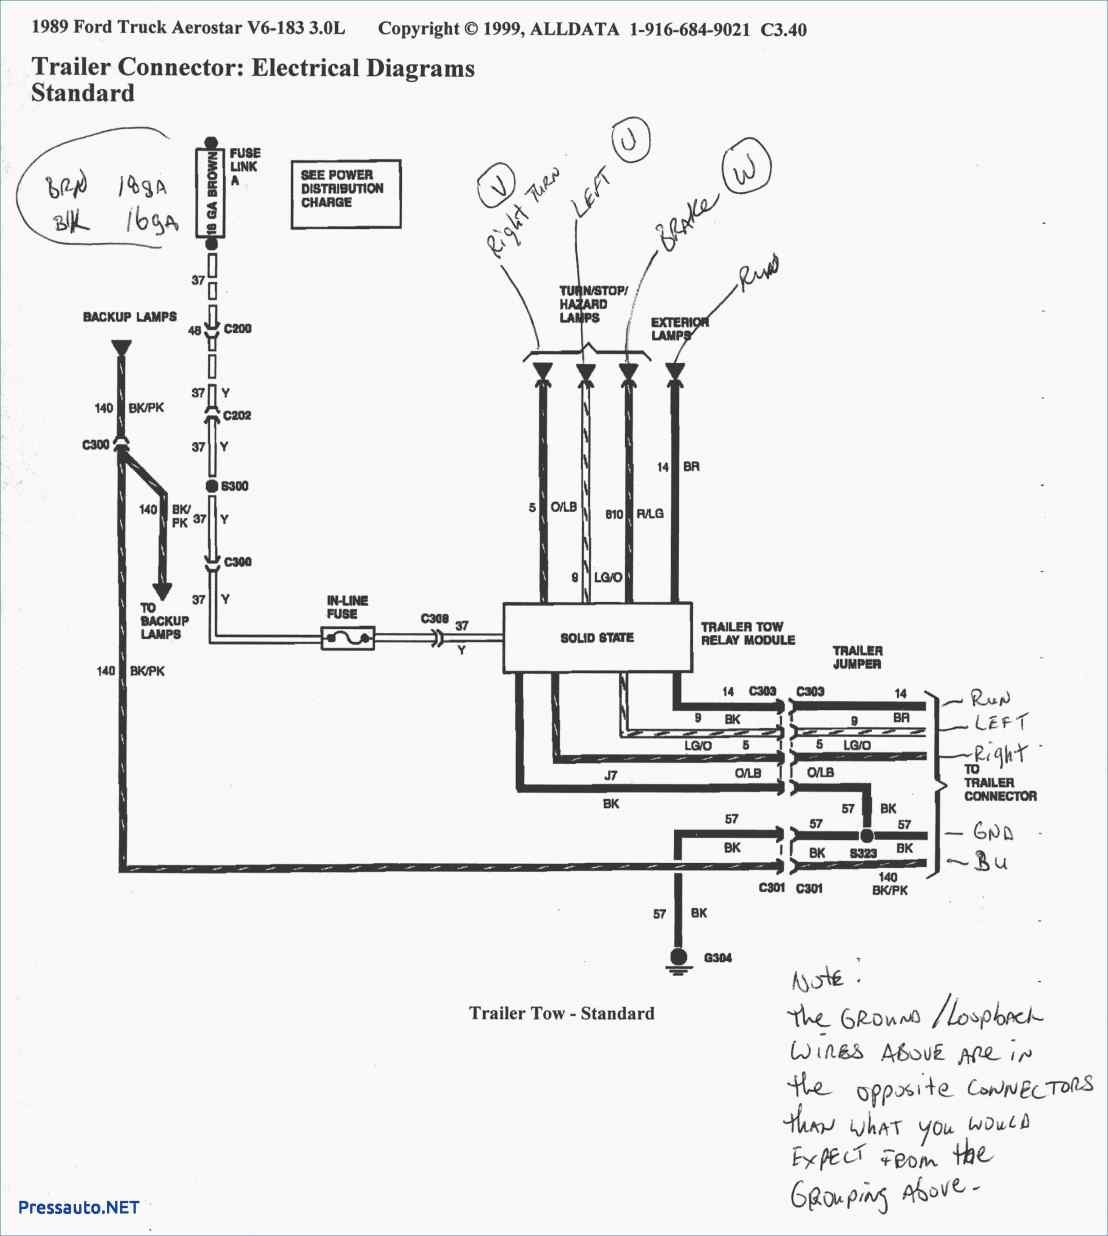 1984 Wiring Diagram - 2006 Gto Fuse Panel Diagram | Bege Wiring DiagramBege Wiring Diagram